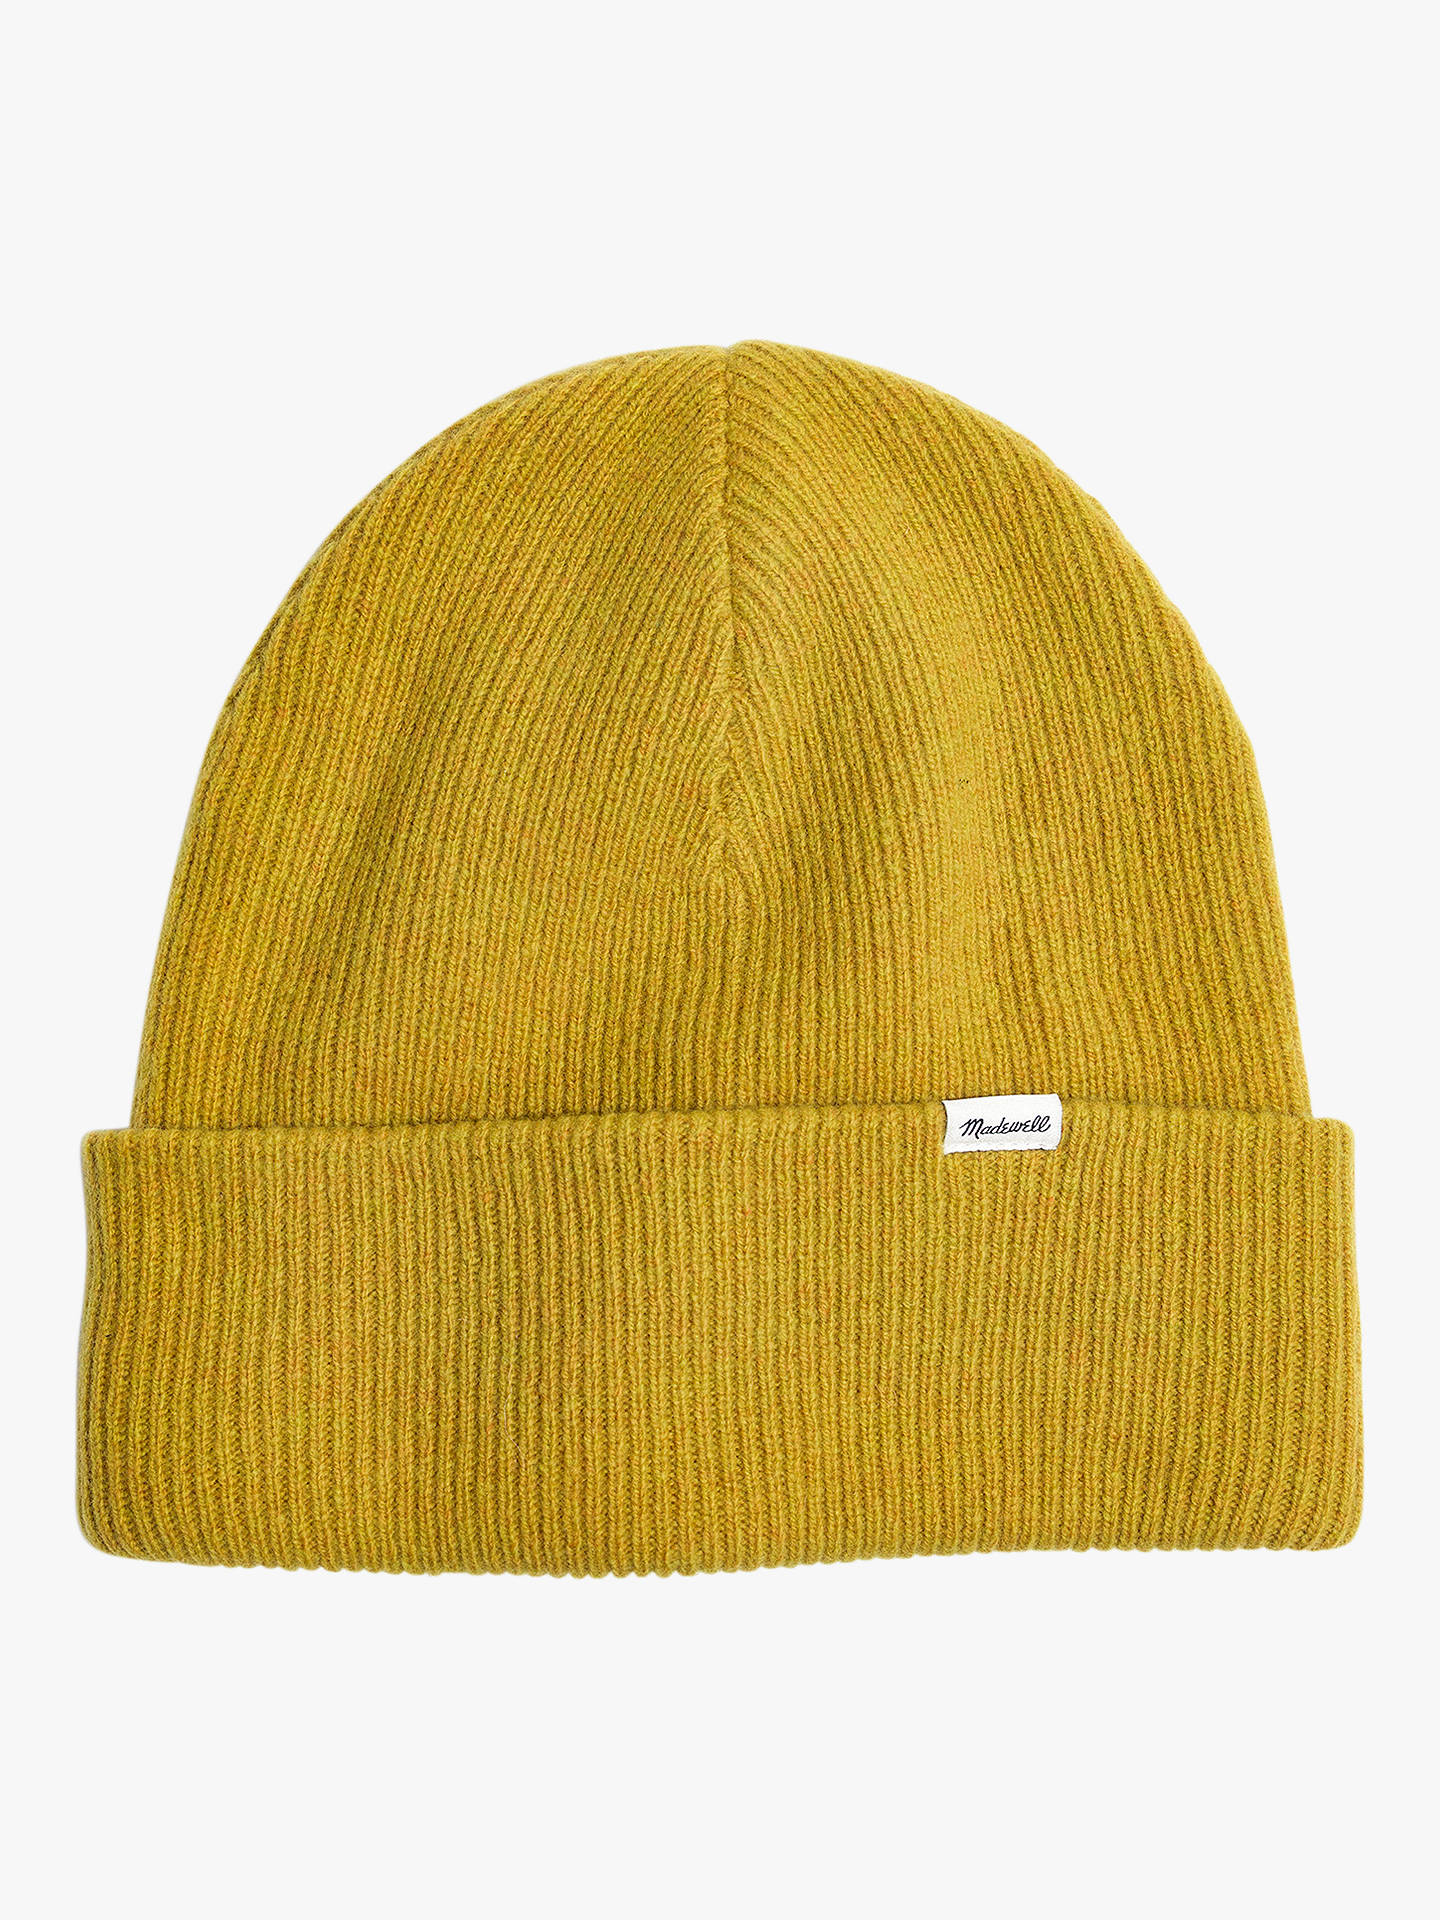 d0424a6ca77e75 Buy Madewell Cuffed Cosy Merino Wool Beanie Hat, Vintage Chartreuse, One  Size Online at